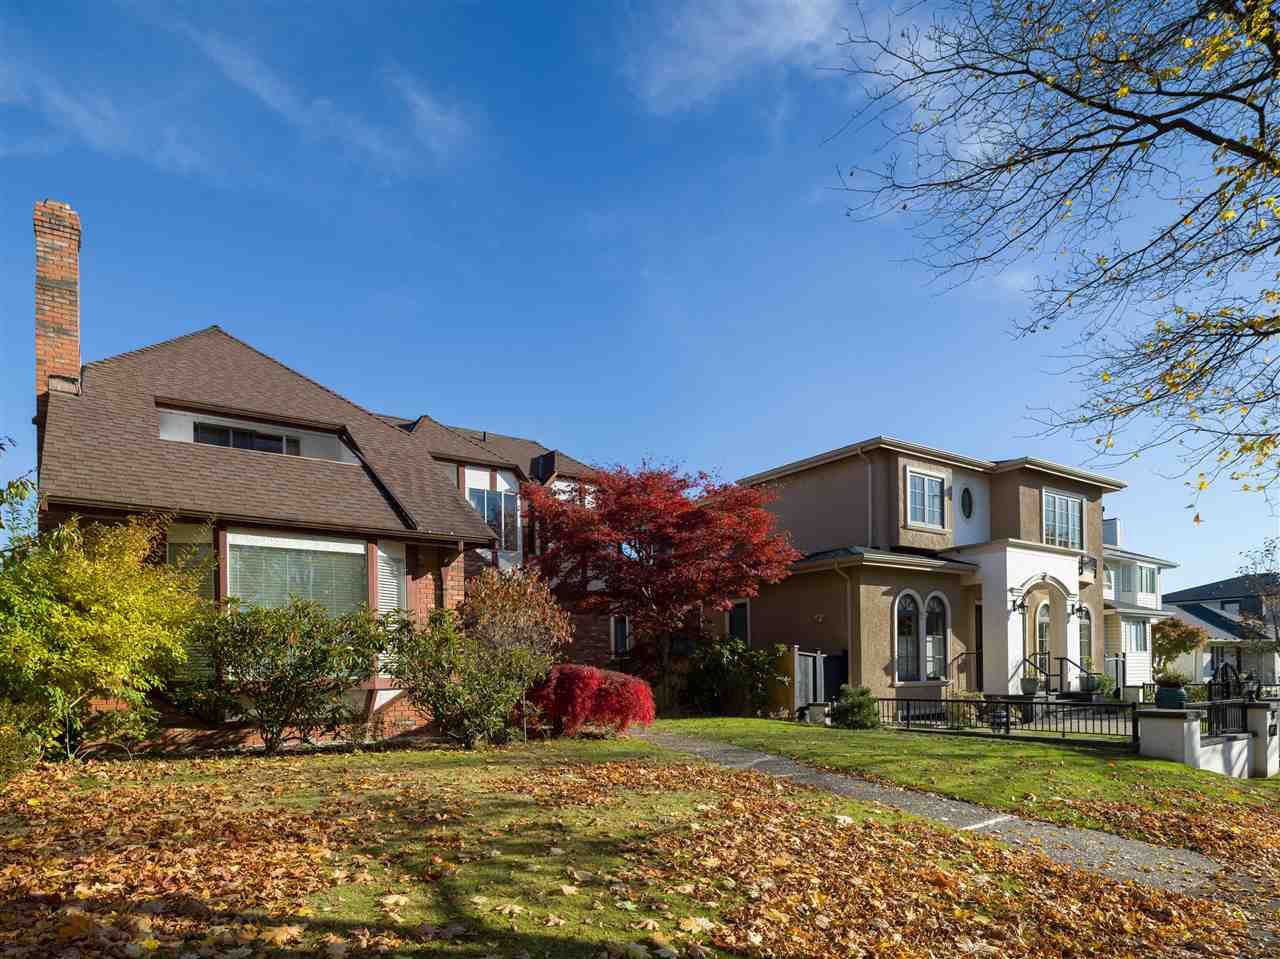 Main Photo: 5578 ELIZABETH Street in Vancouver: Cambie House for sale (Vancouver West)  : MLS®# R2518593